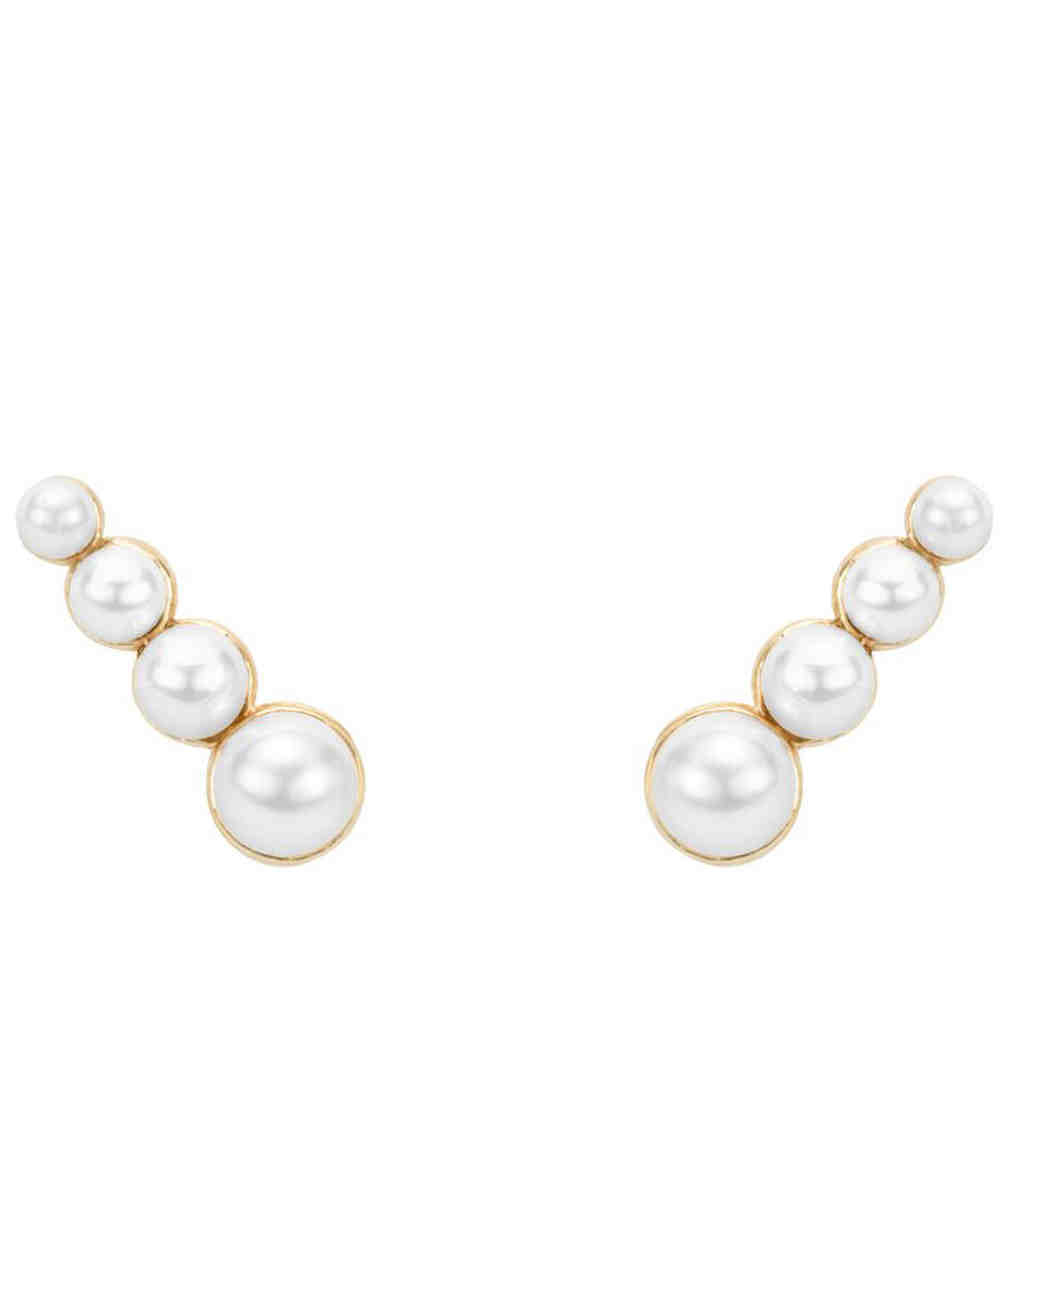 pearl wedding earrings hortense 4 pearls